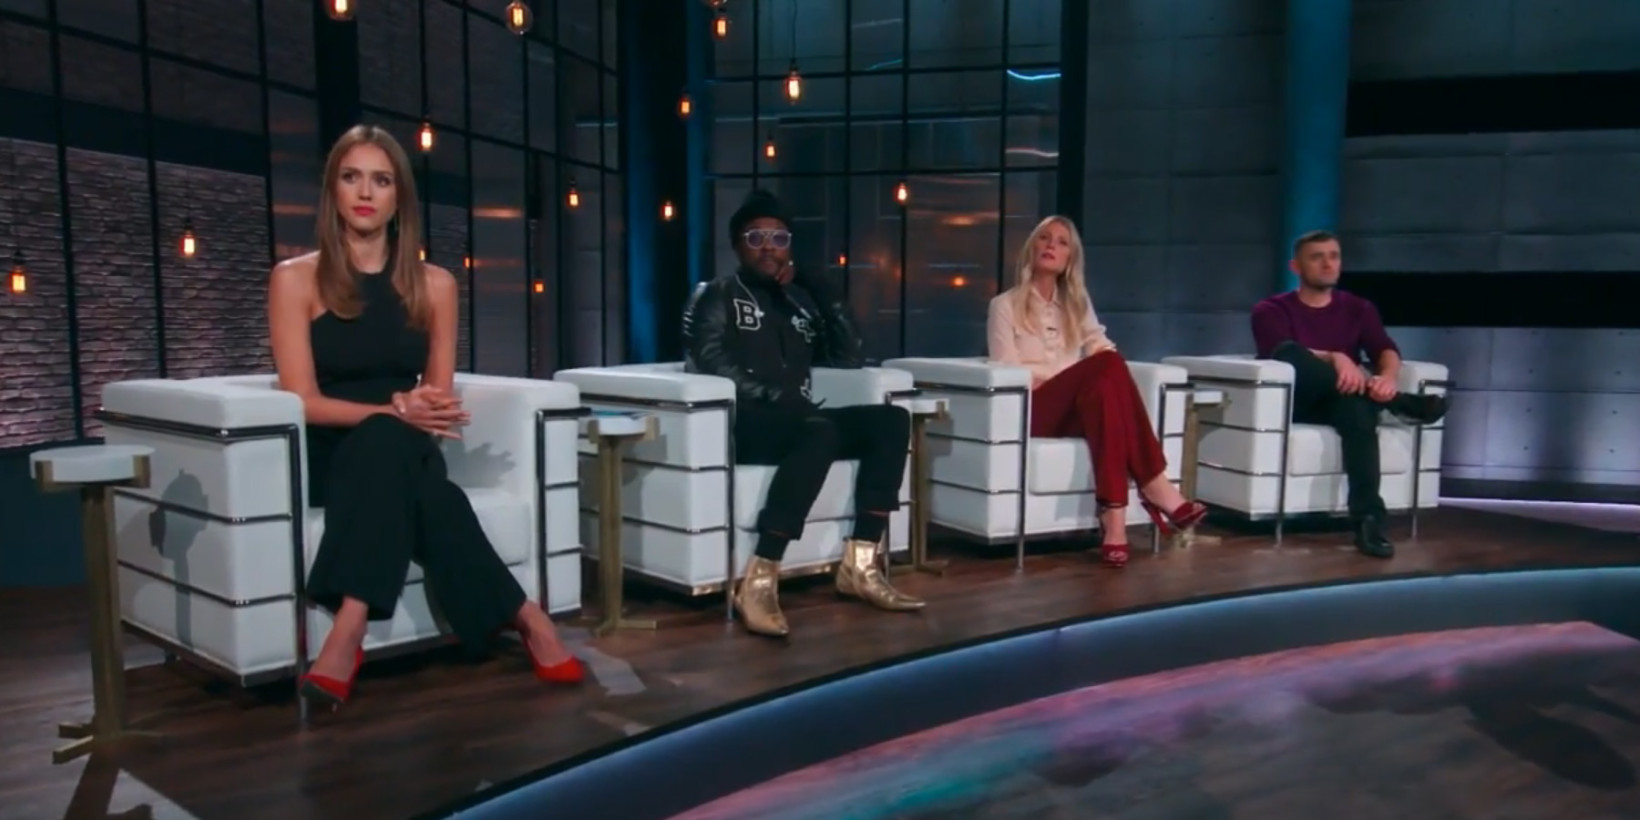 If you like Shark Tank, you'll probably enjoy Apple's Planet of the Apps